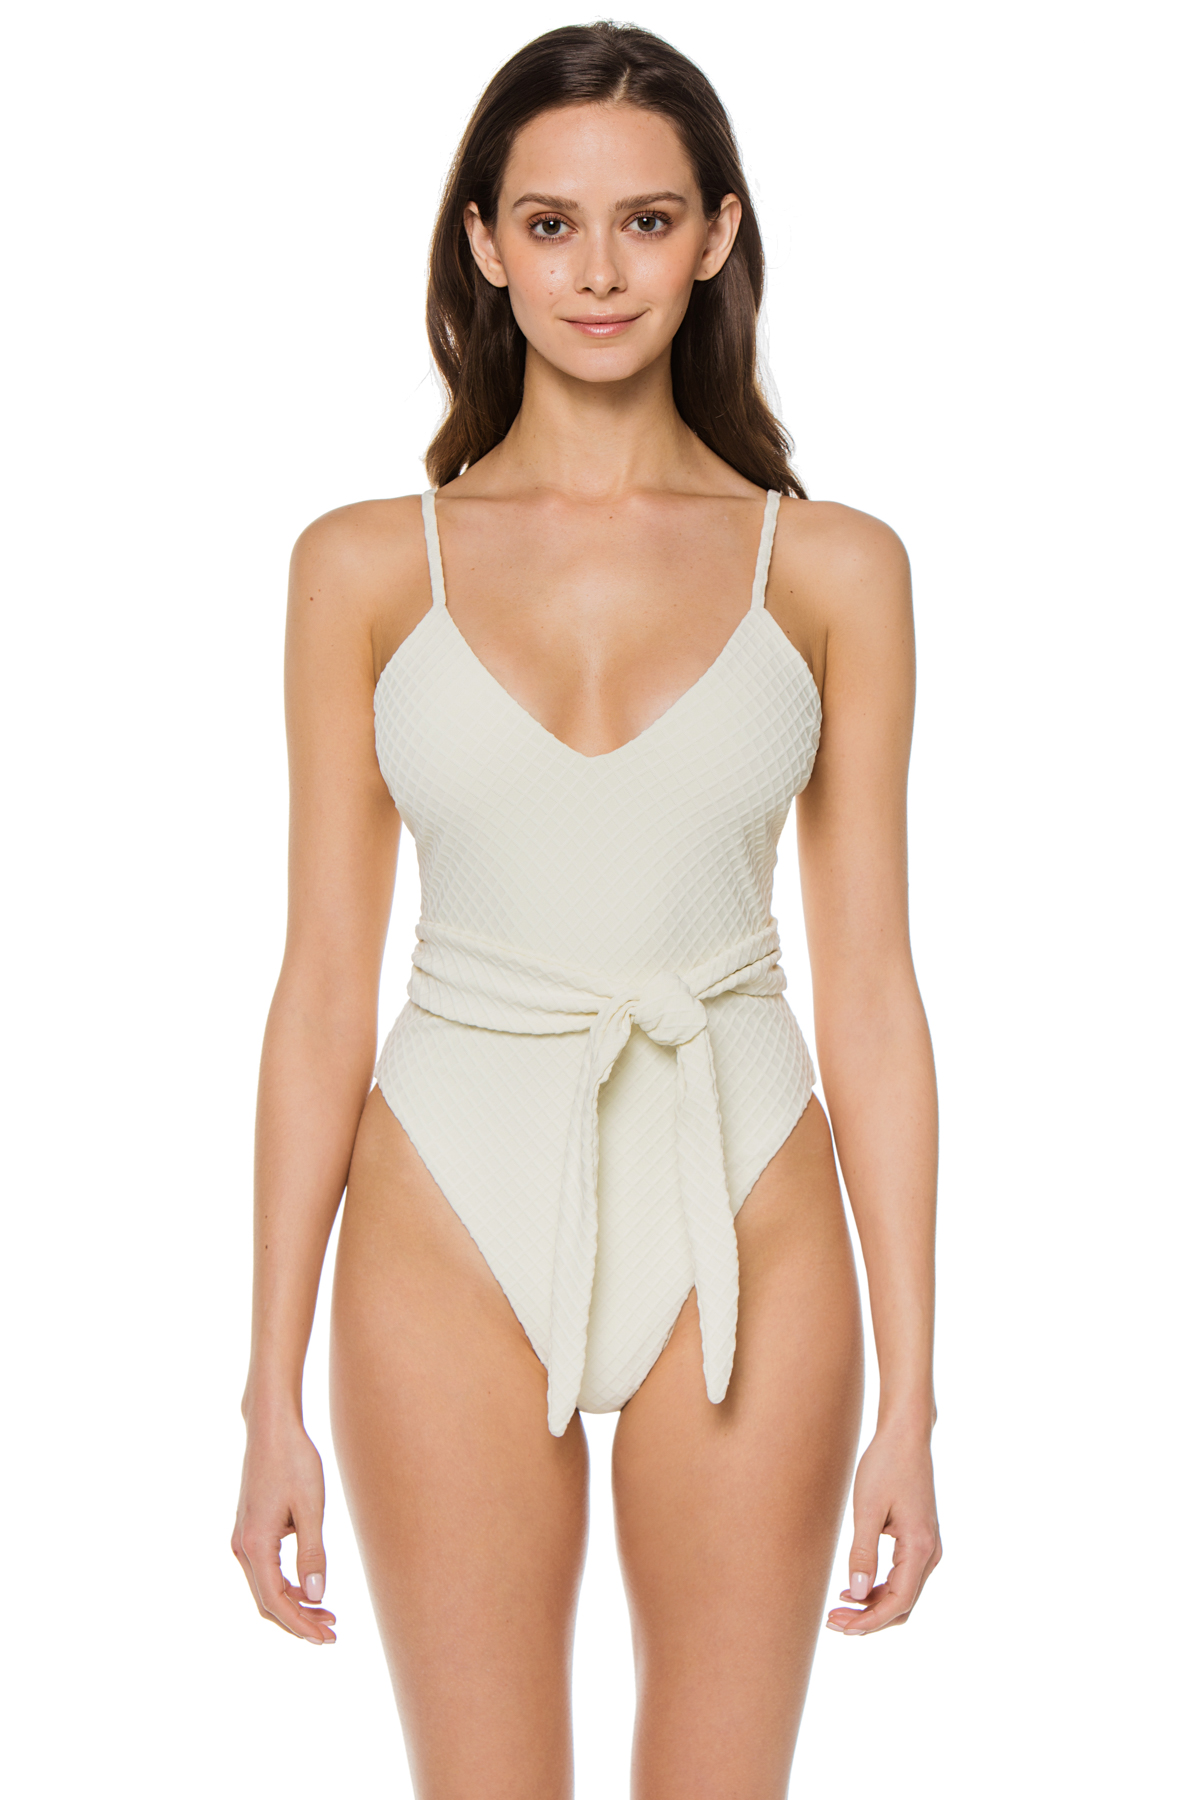 Gamela Over The Shoulder One Piece Swimsuit - Cream 1